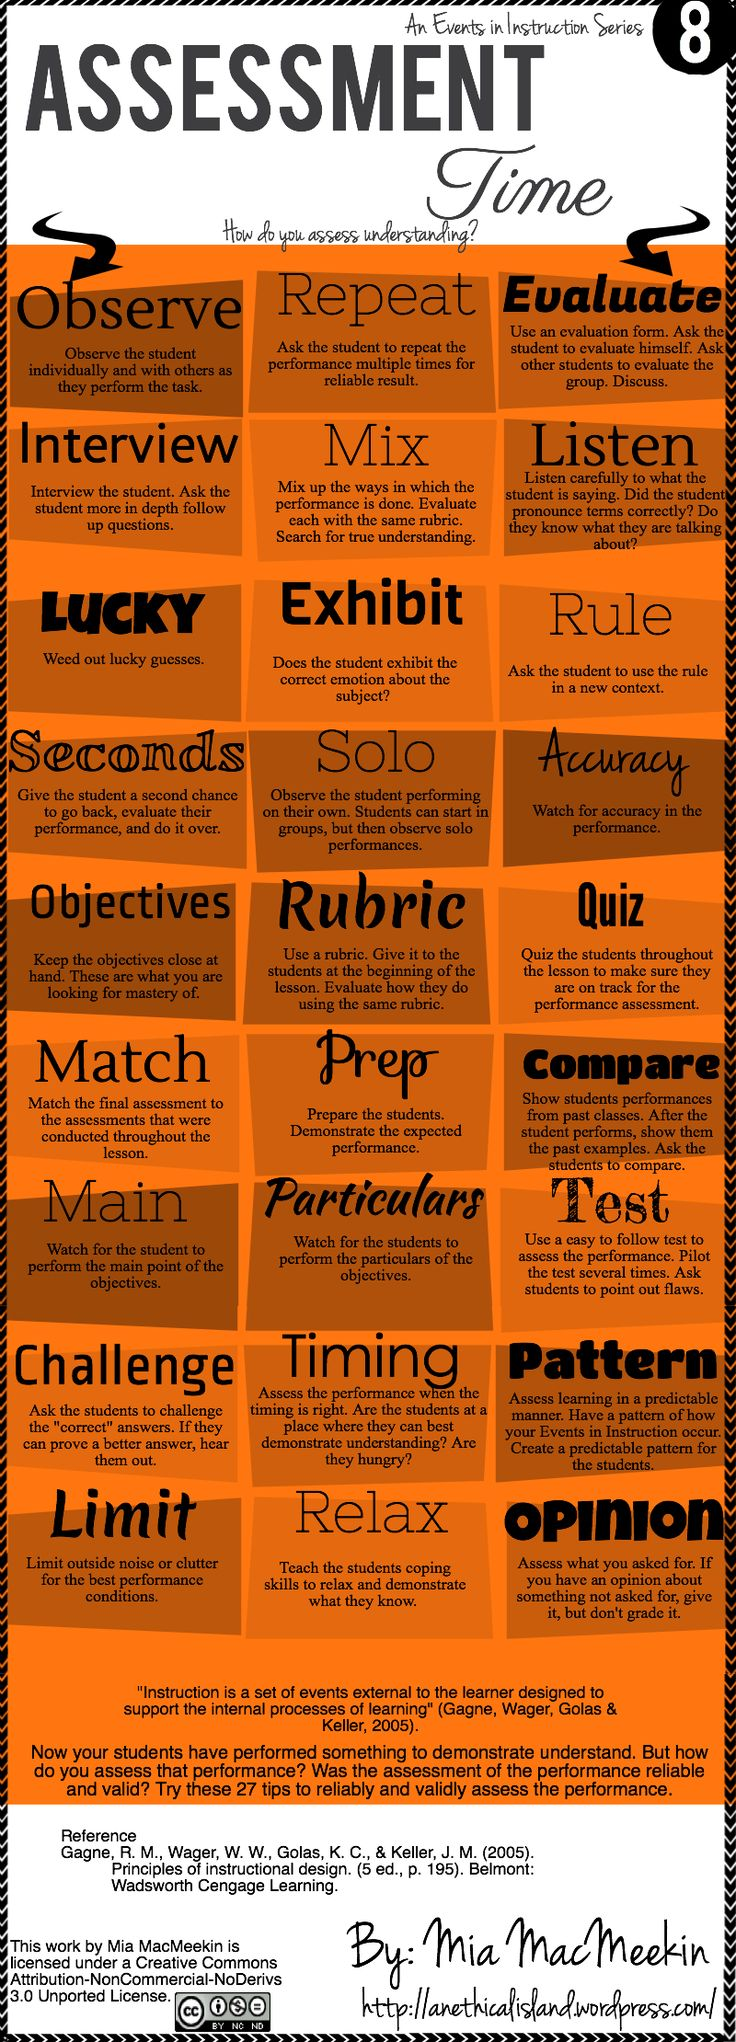 Assessment Time: How do you Assess Understanding? #apits #edchat #elearning